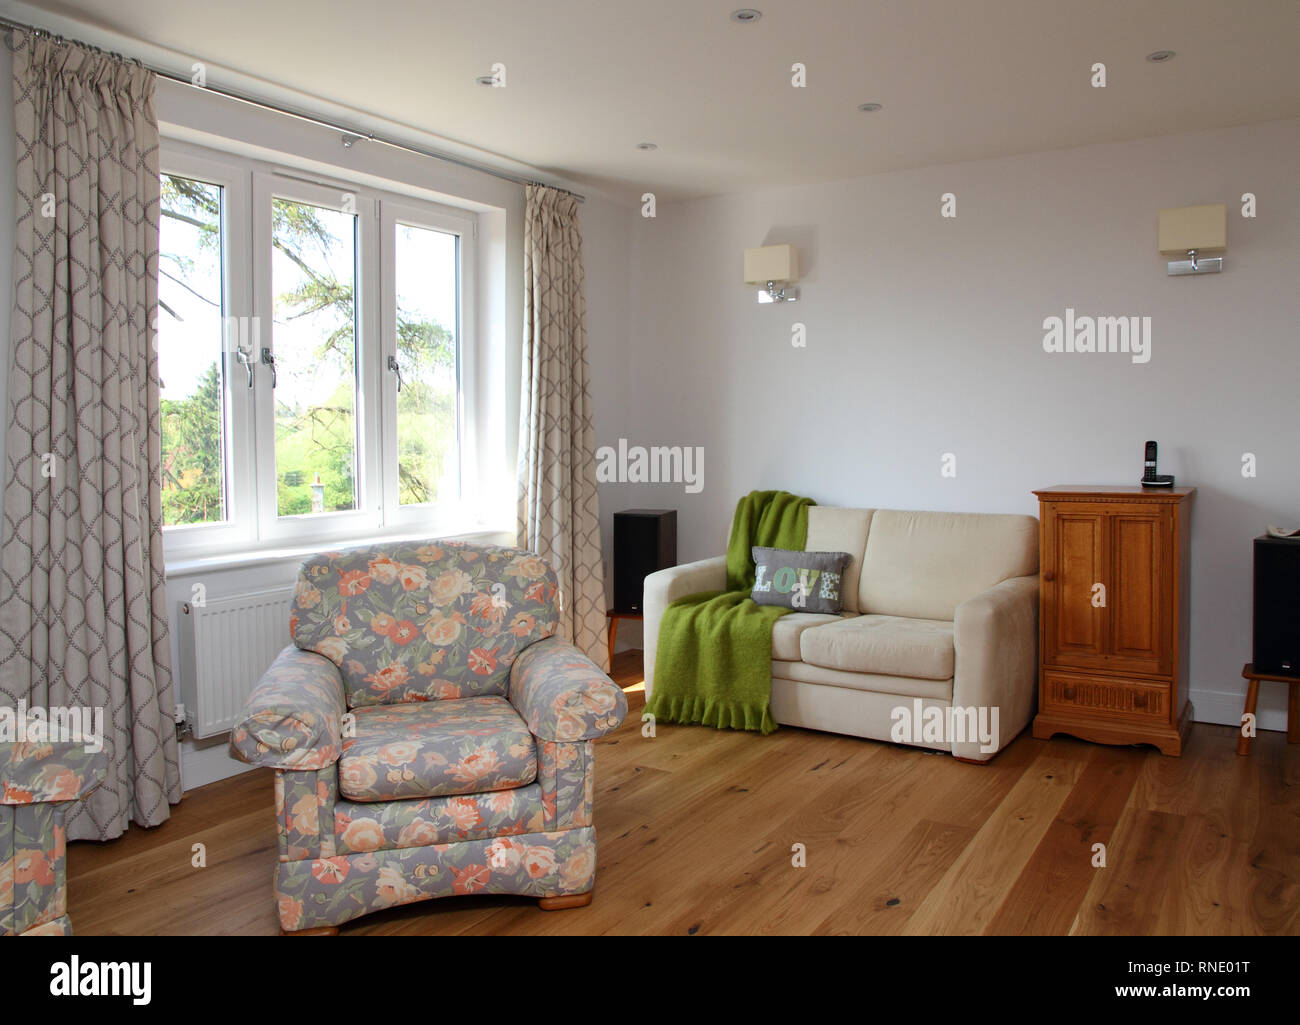 Aoartment living room - Stock Image